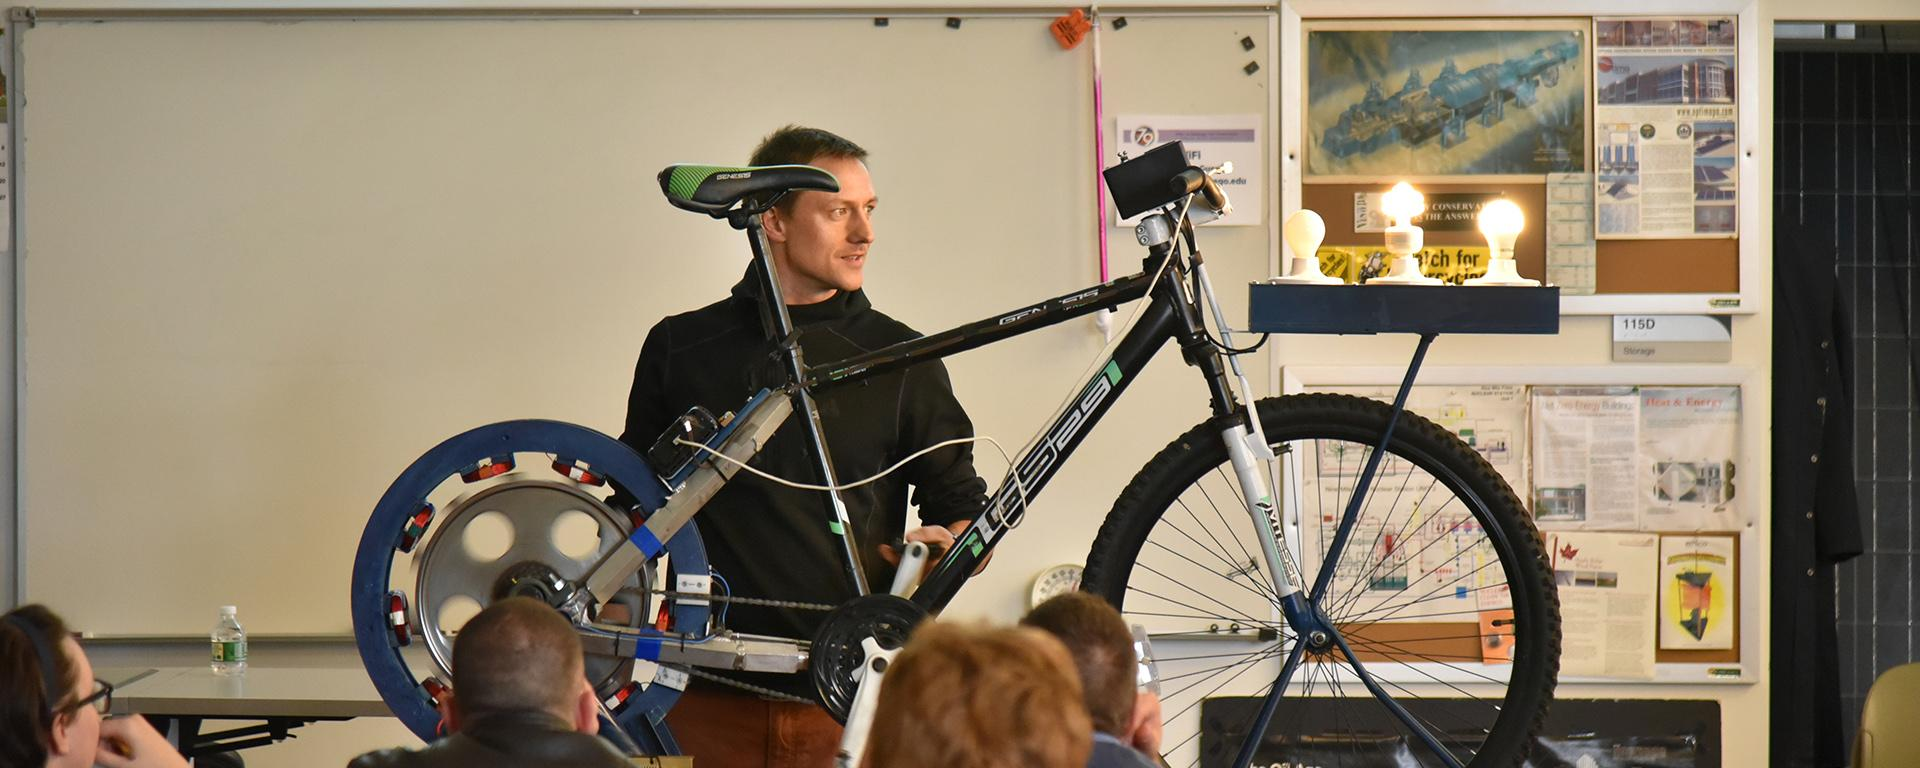 Presenter shows bicycle generating electricity